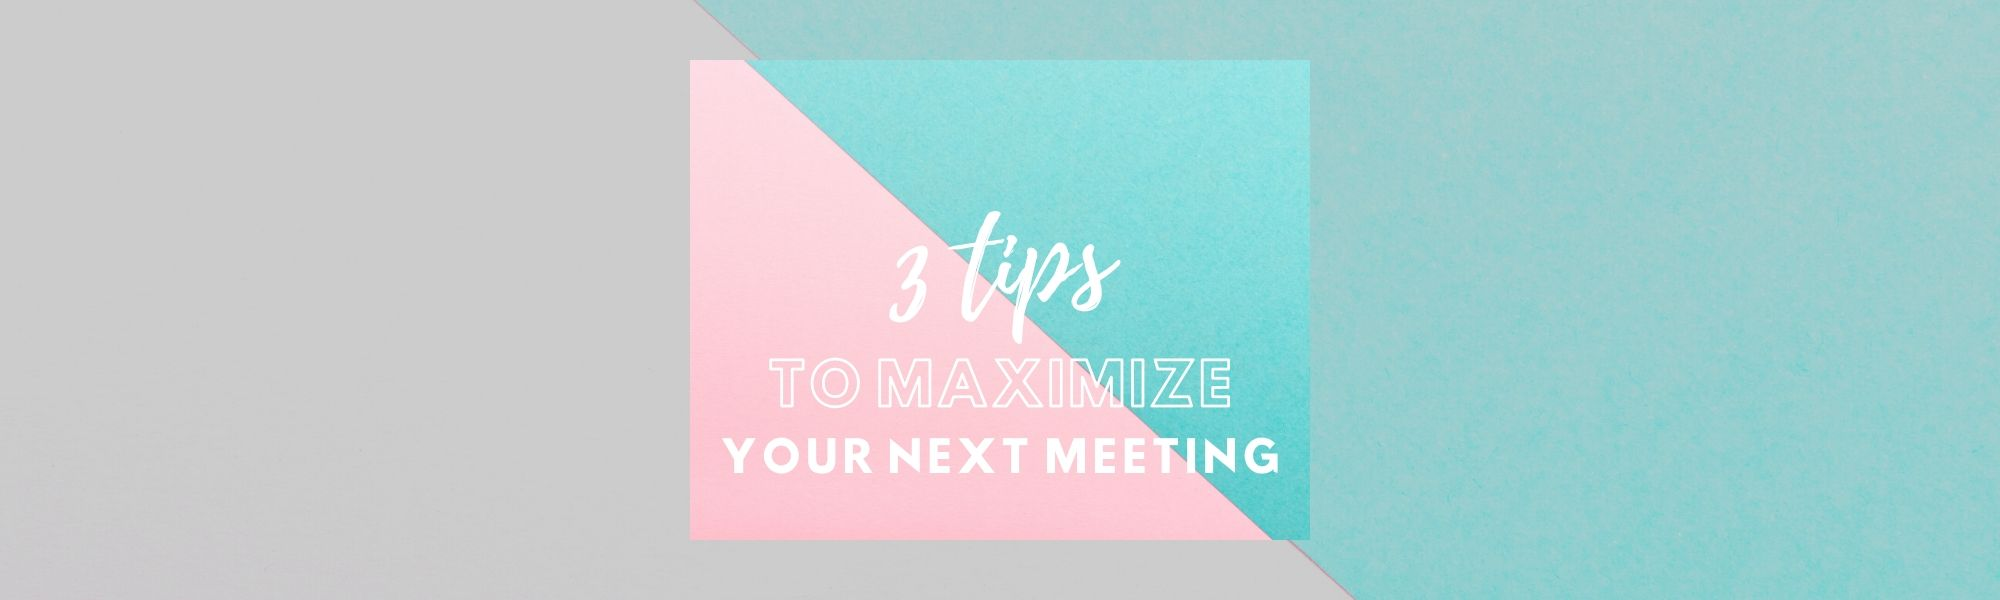 Use this Hack to Have Engaging Team Meetings